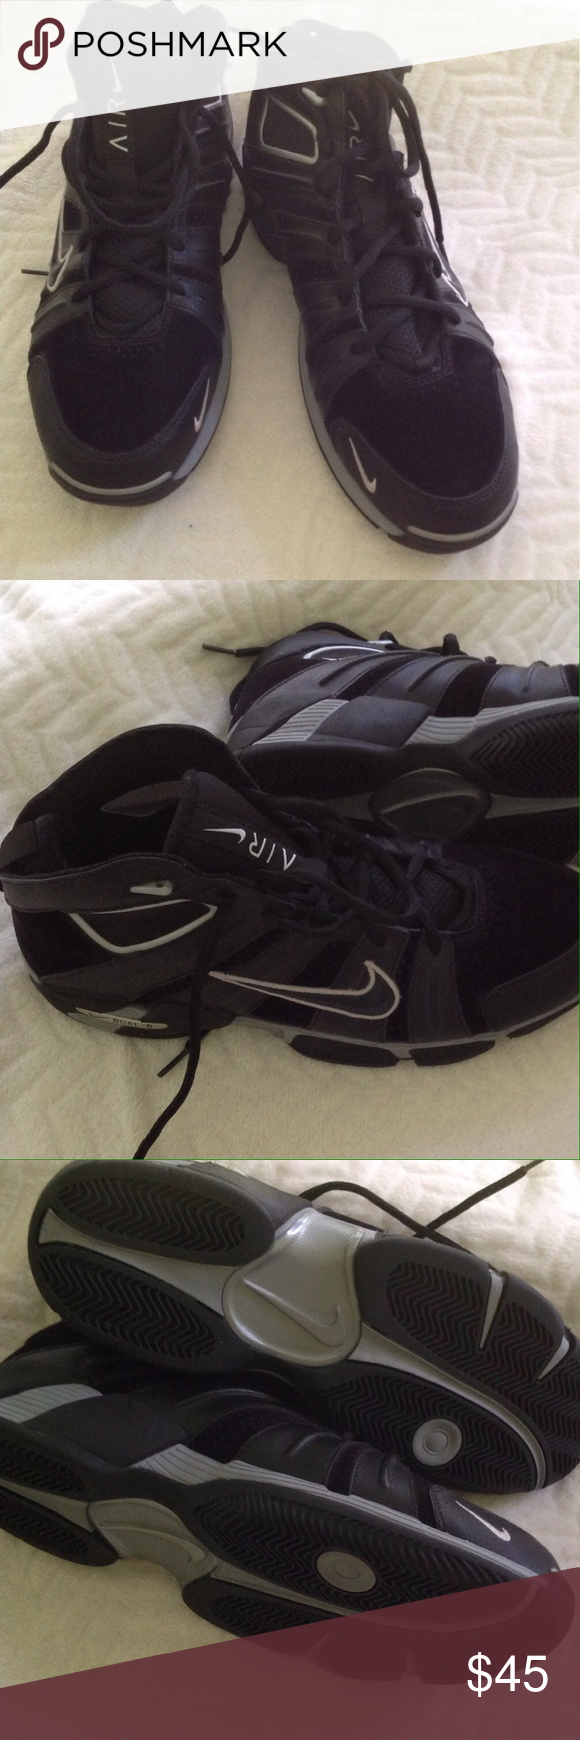 Men's Nike Air shoes Excellent like new Dual-D nikes air athletic shoes. Nike Shoes Athletic Shoes